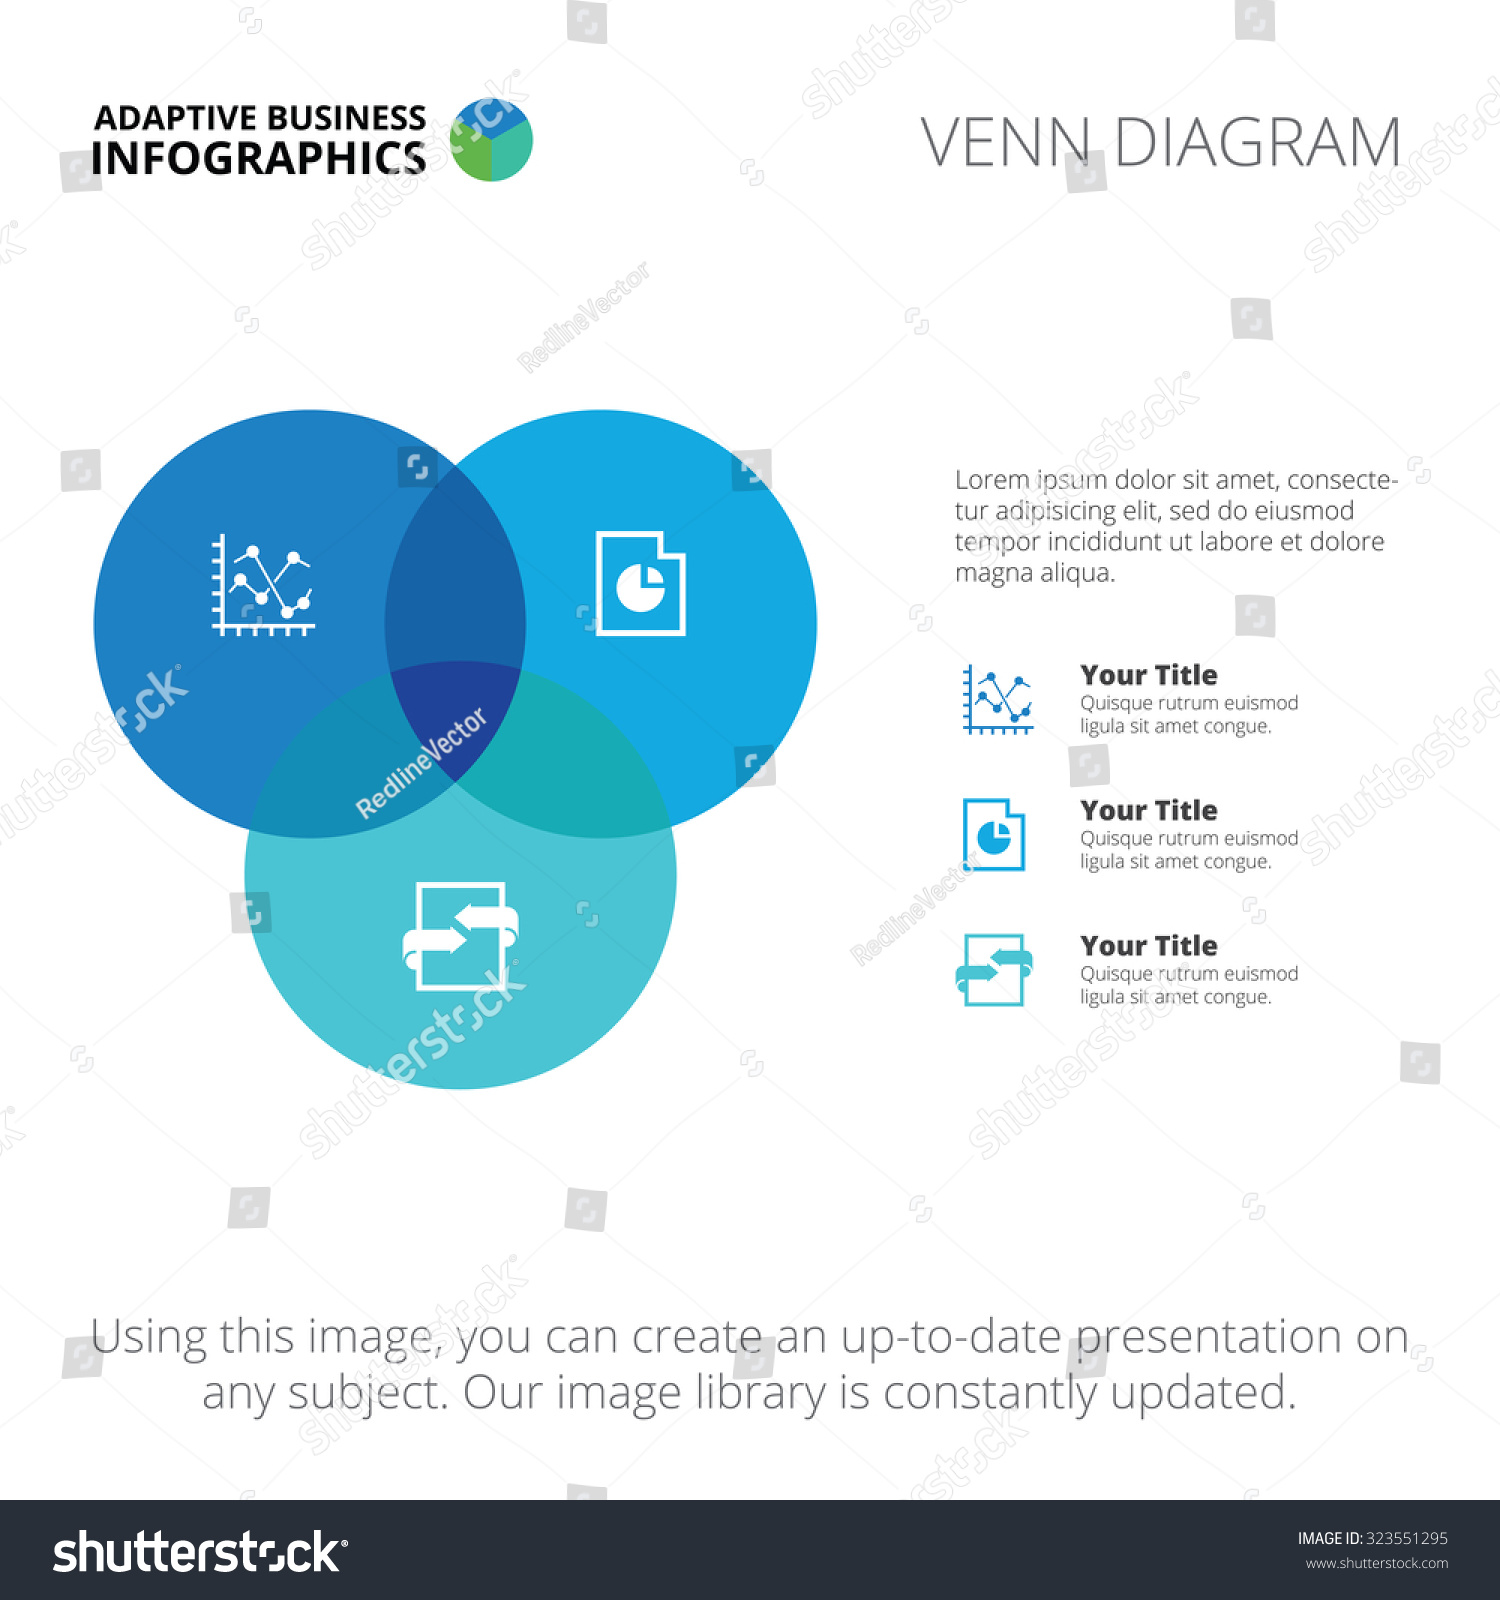 Editable infographic template venn diagram blue stock vector editable infographic template of venn diagram blue and light blue version pooptronica Gallery